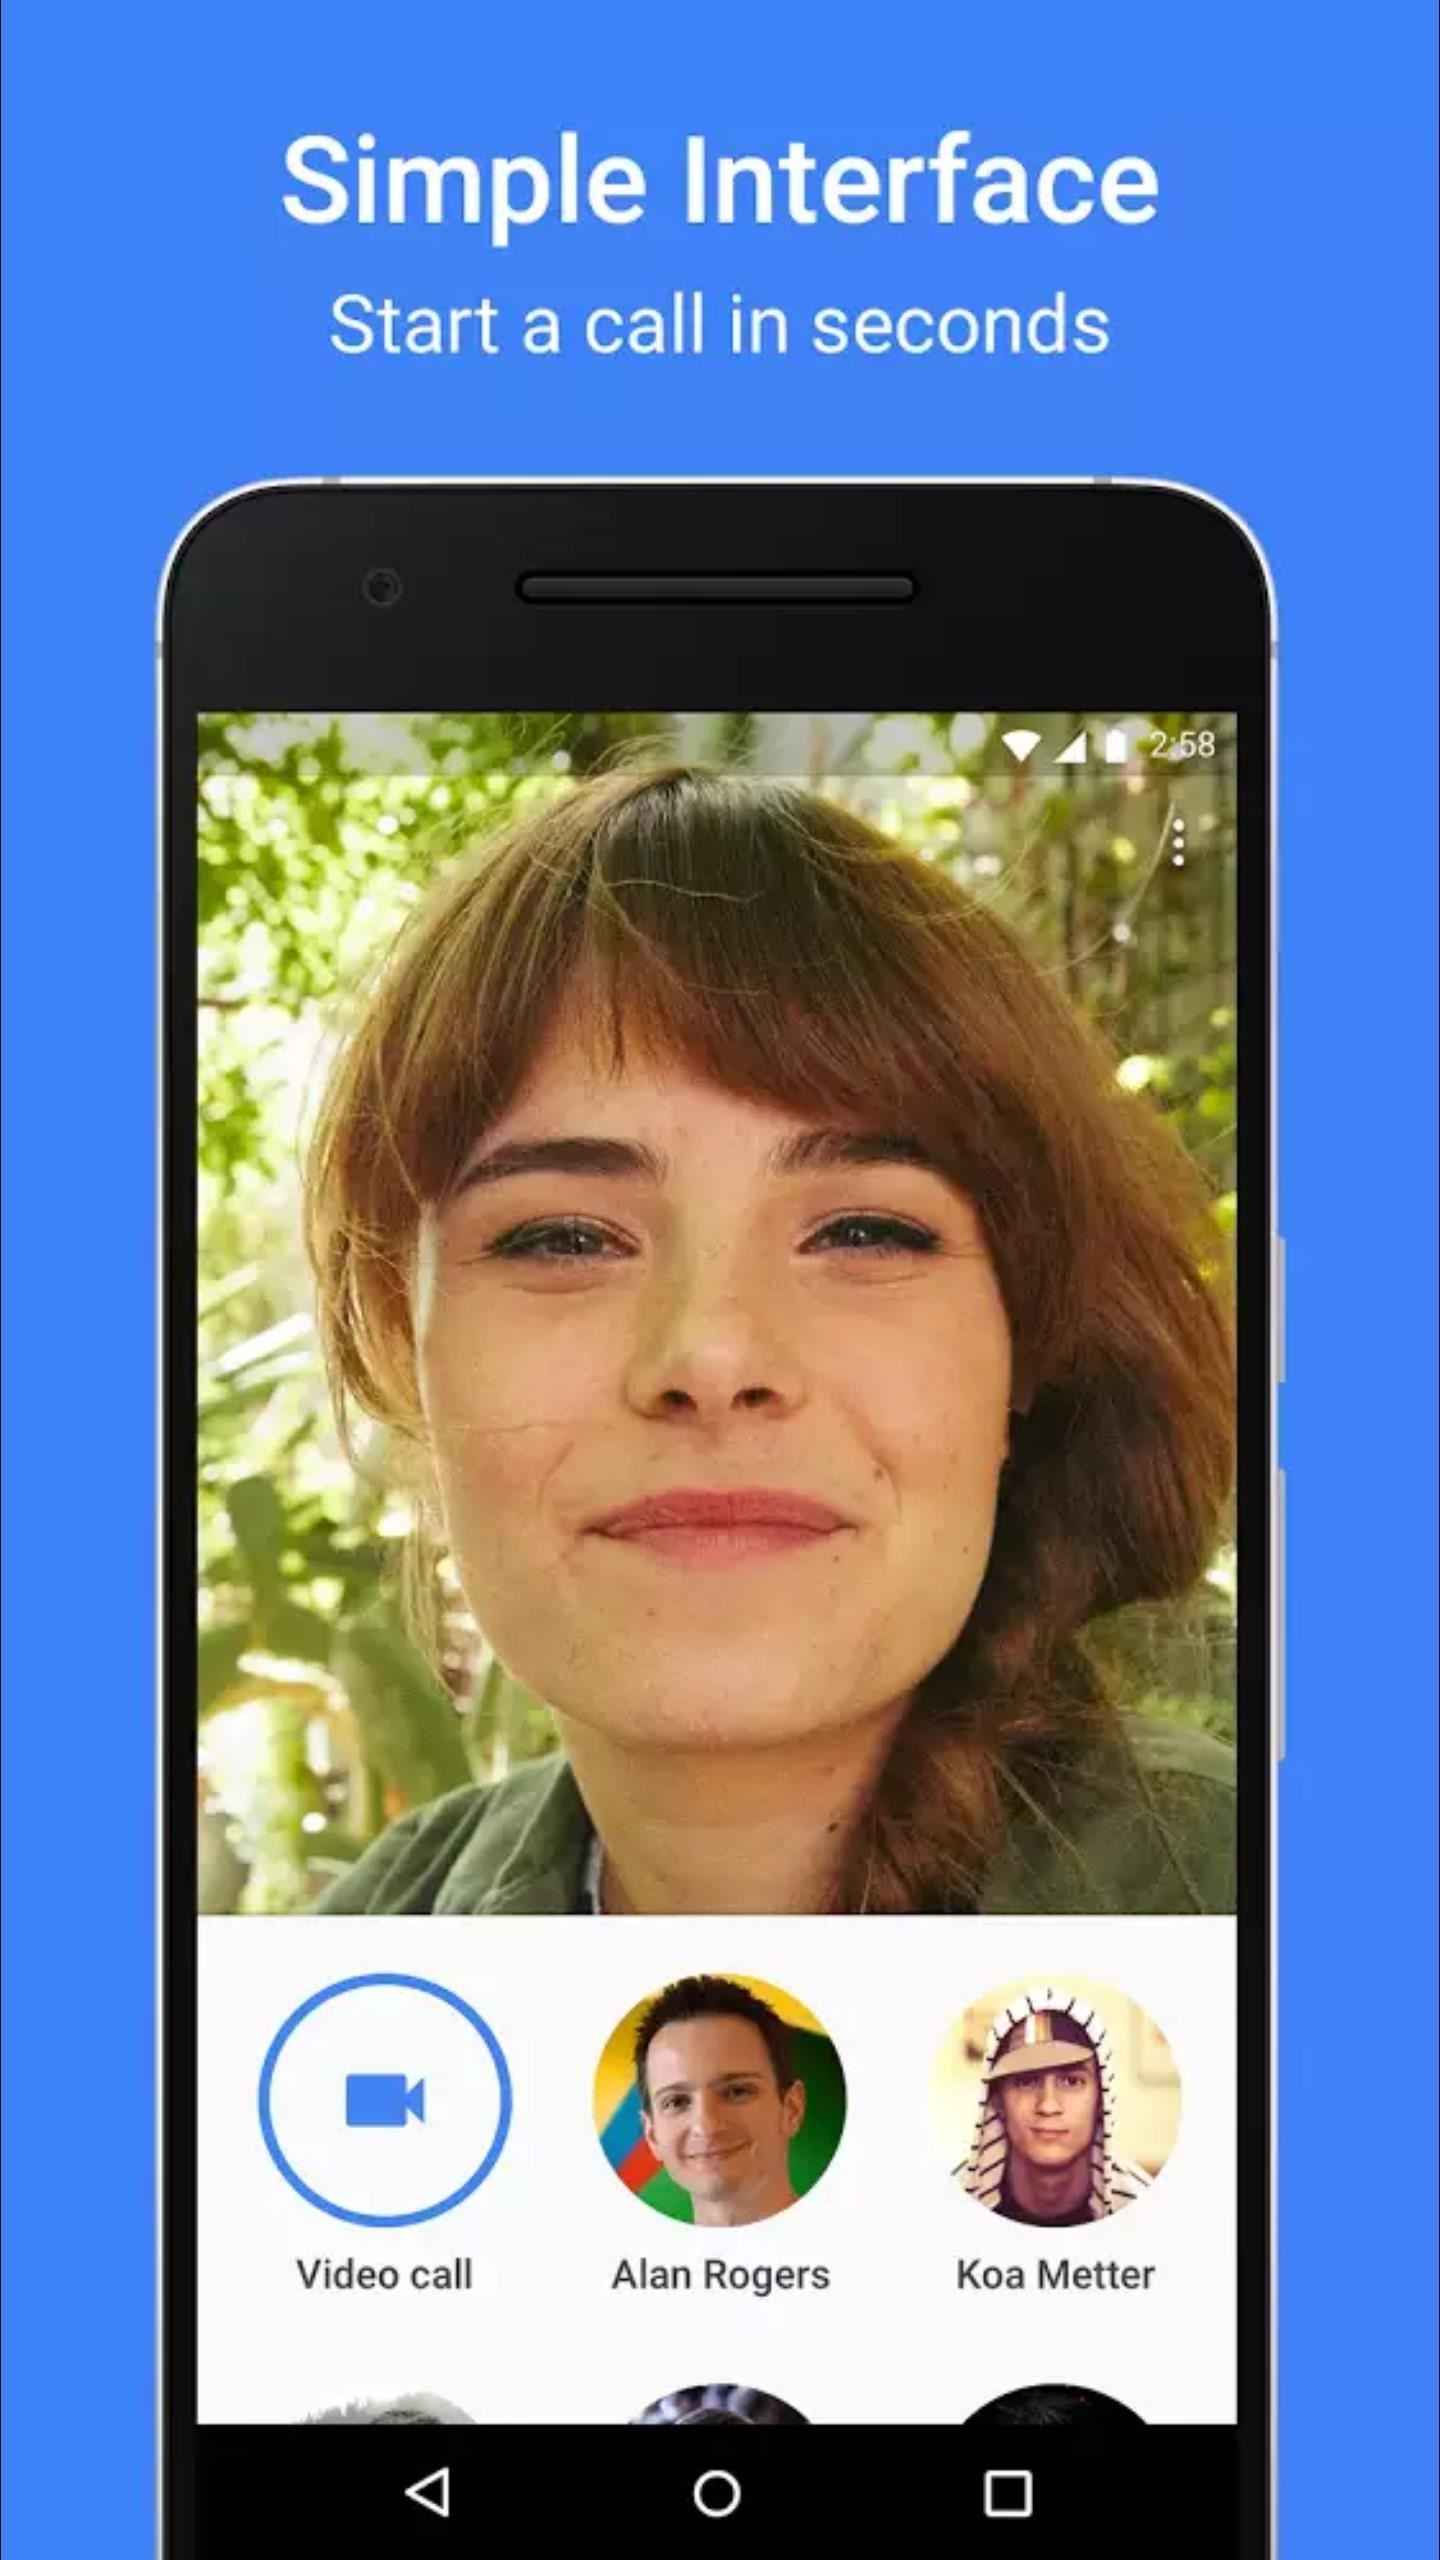 Google Finally Launches Duo—Here's Why You Should Give the New Video Chat App a Try